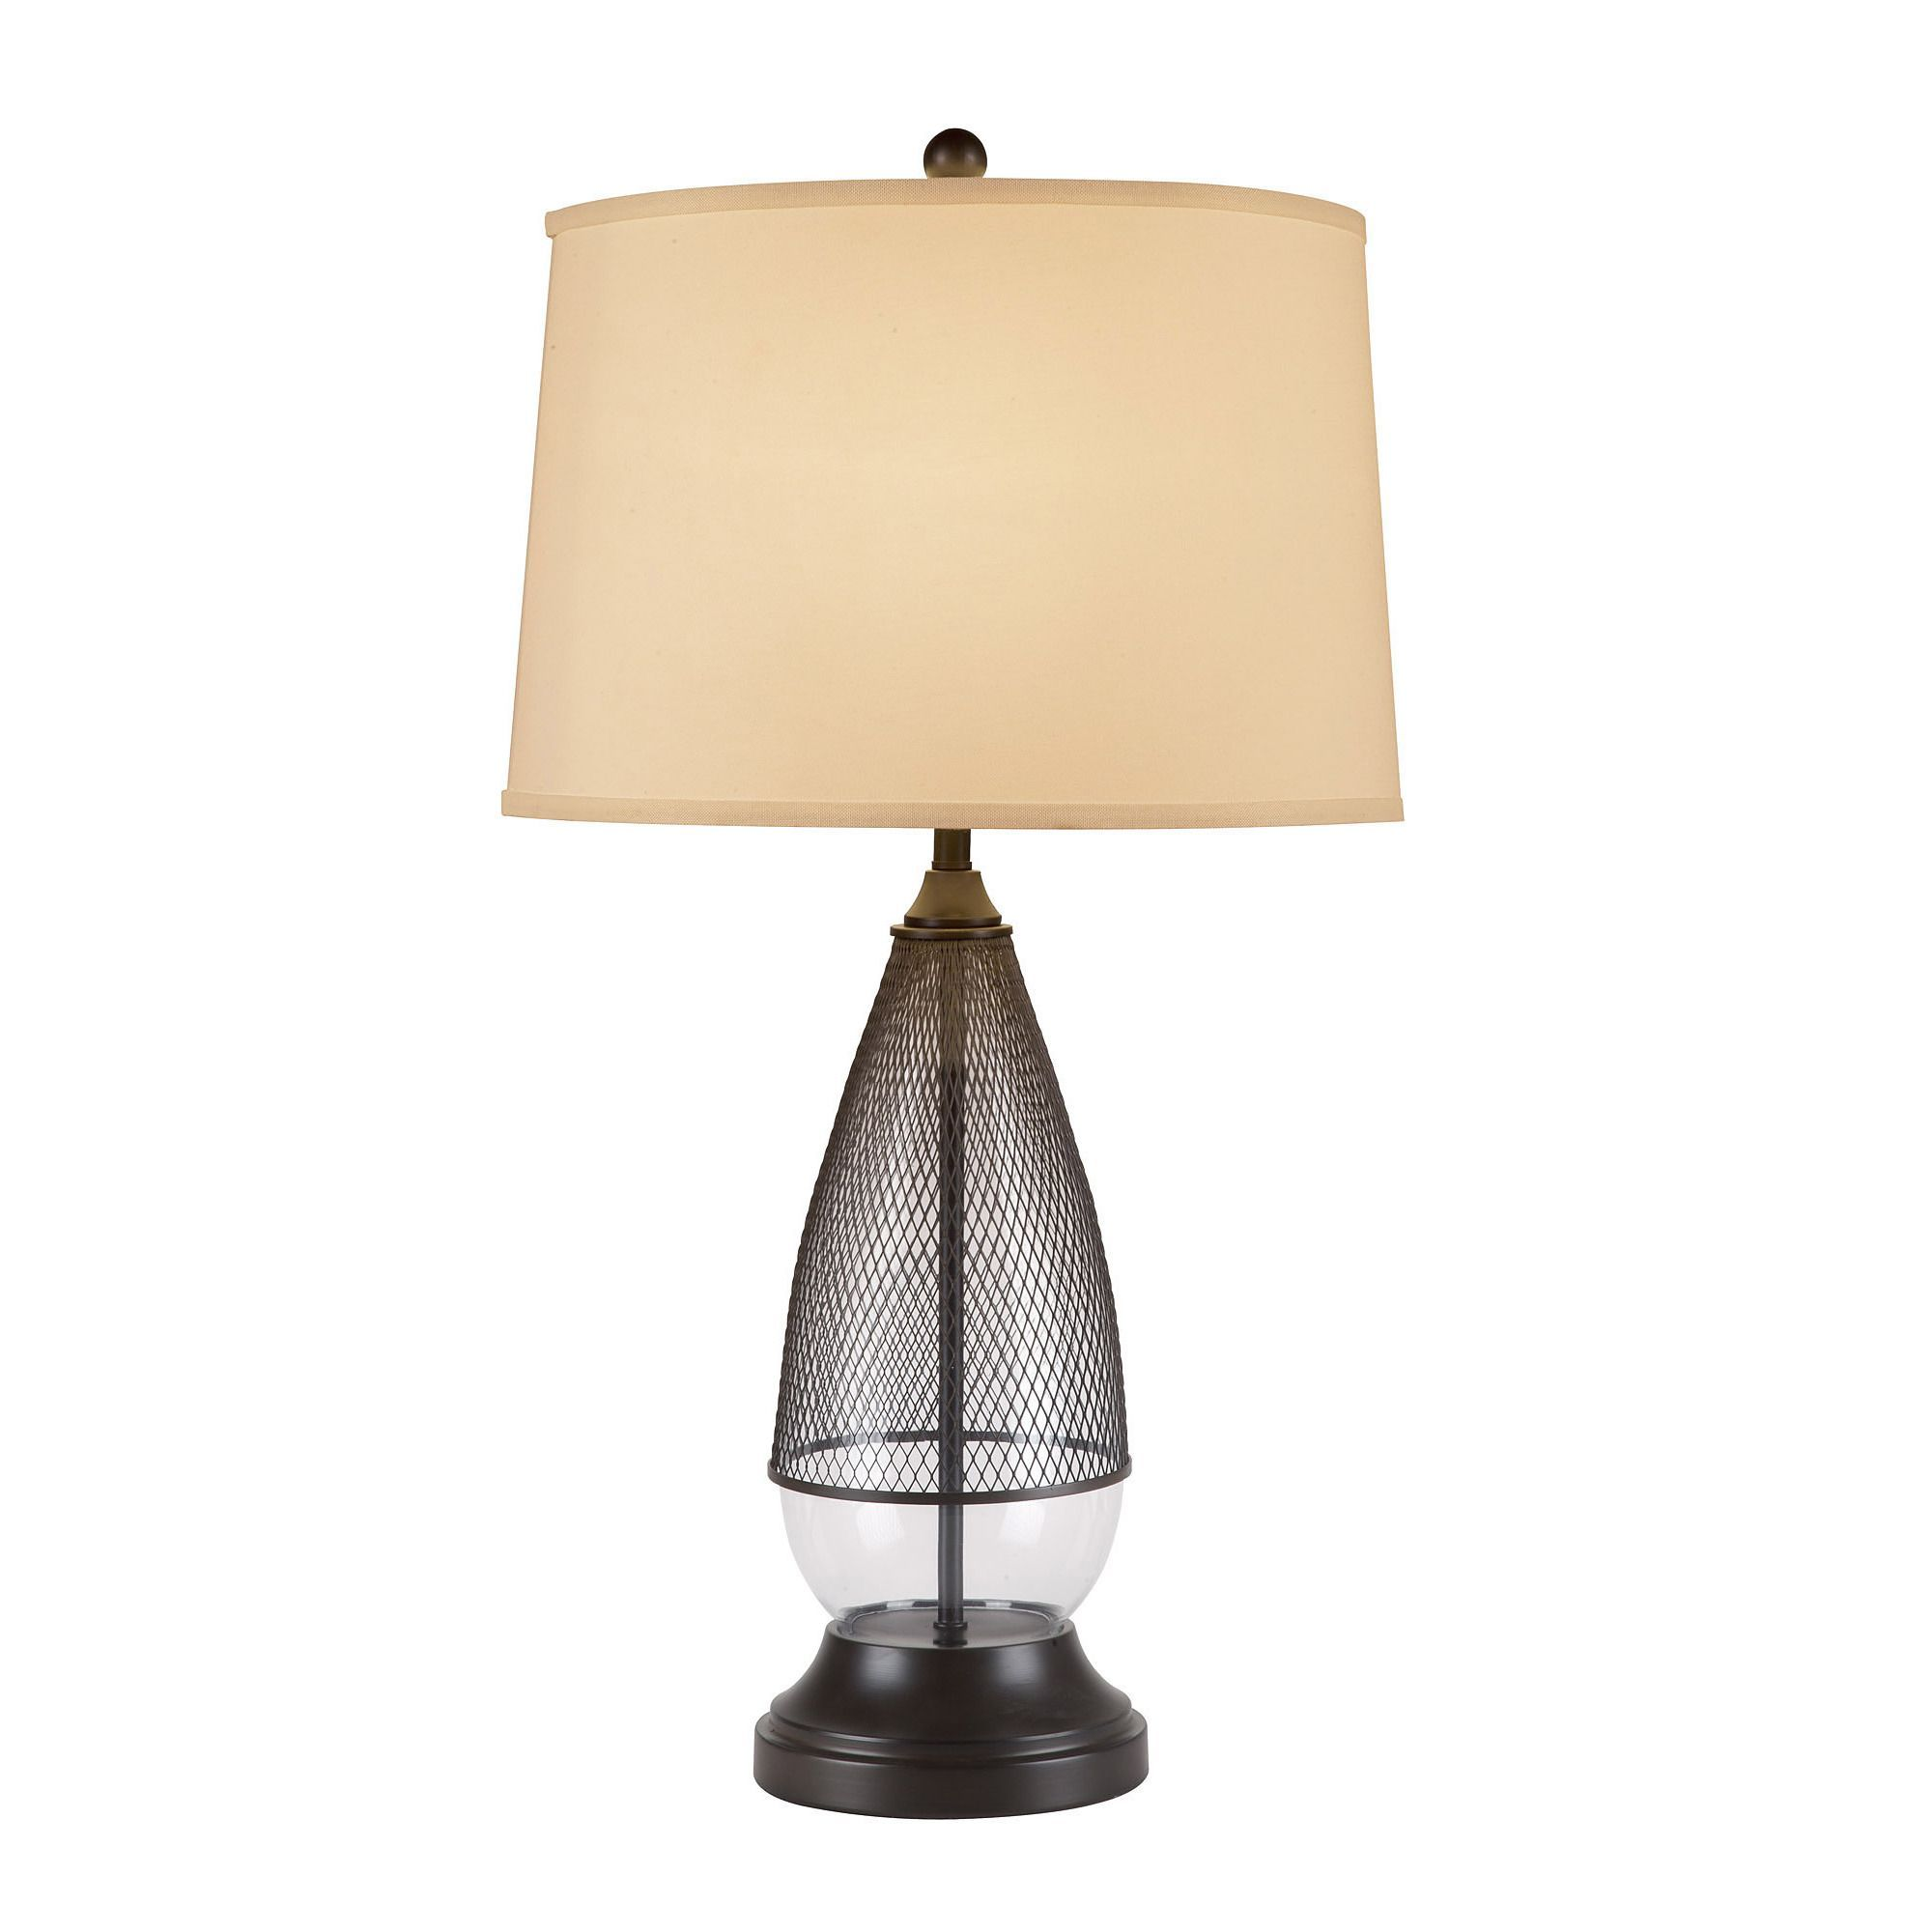 Catalina thomas 3 way 30 inch clear glass and bronze metal table catalina thomas 3 way 30 inch clear glass and bronze metal table lamp w cream linen mod drum shade bulb included clear glass bronze metal silver geotapseo Gallery